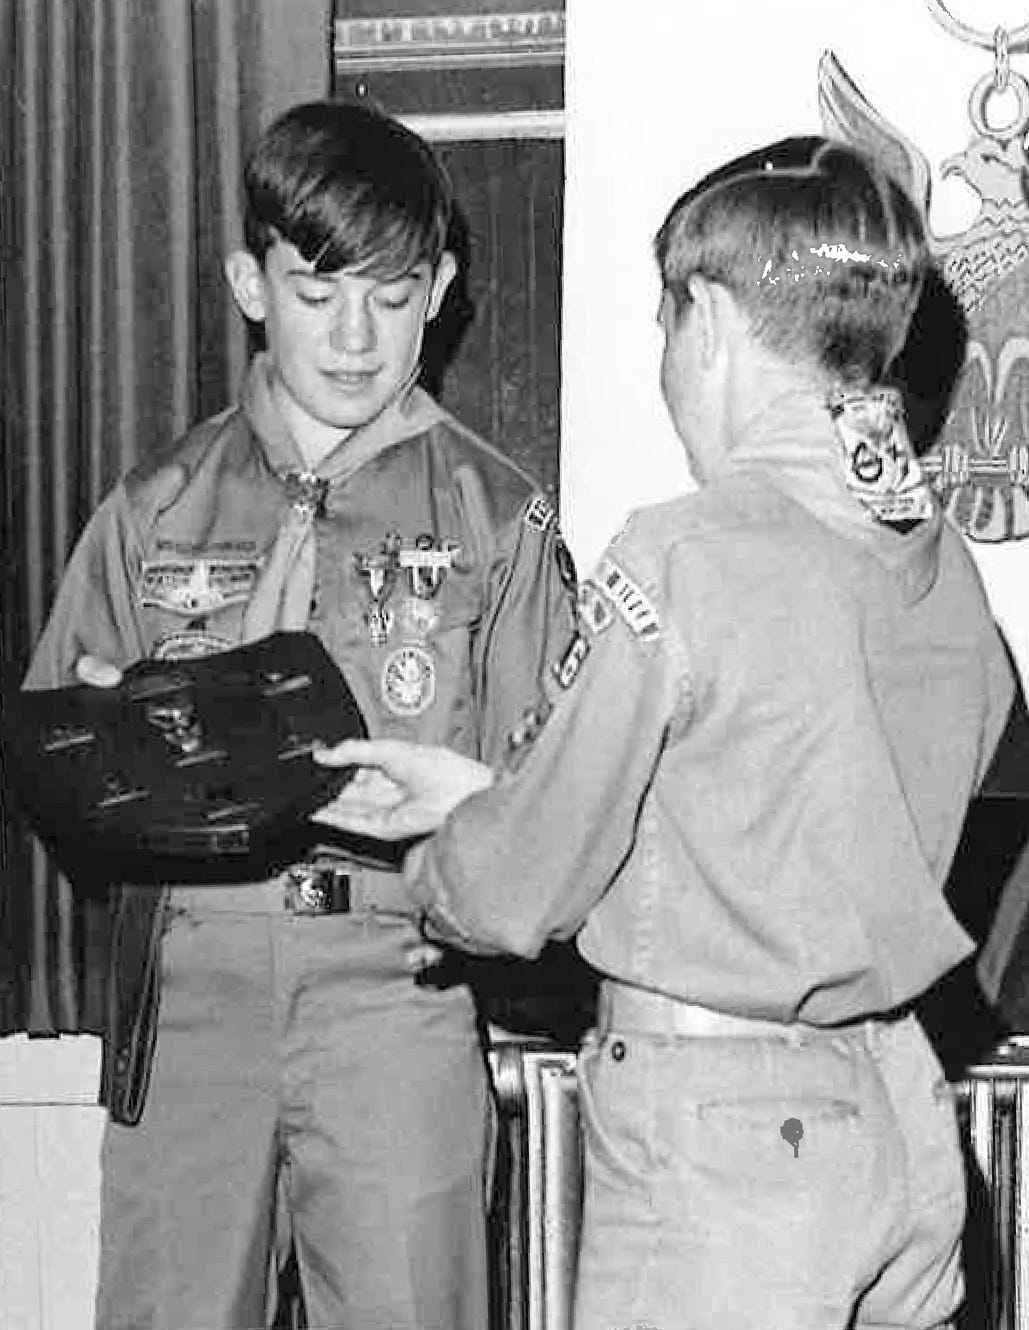 Michael Crow (left) receives his Eagle Scout badge in Maryland in 1969.